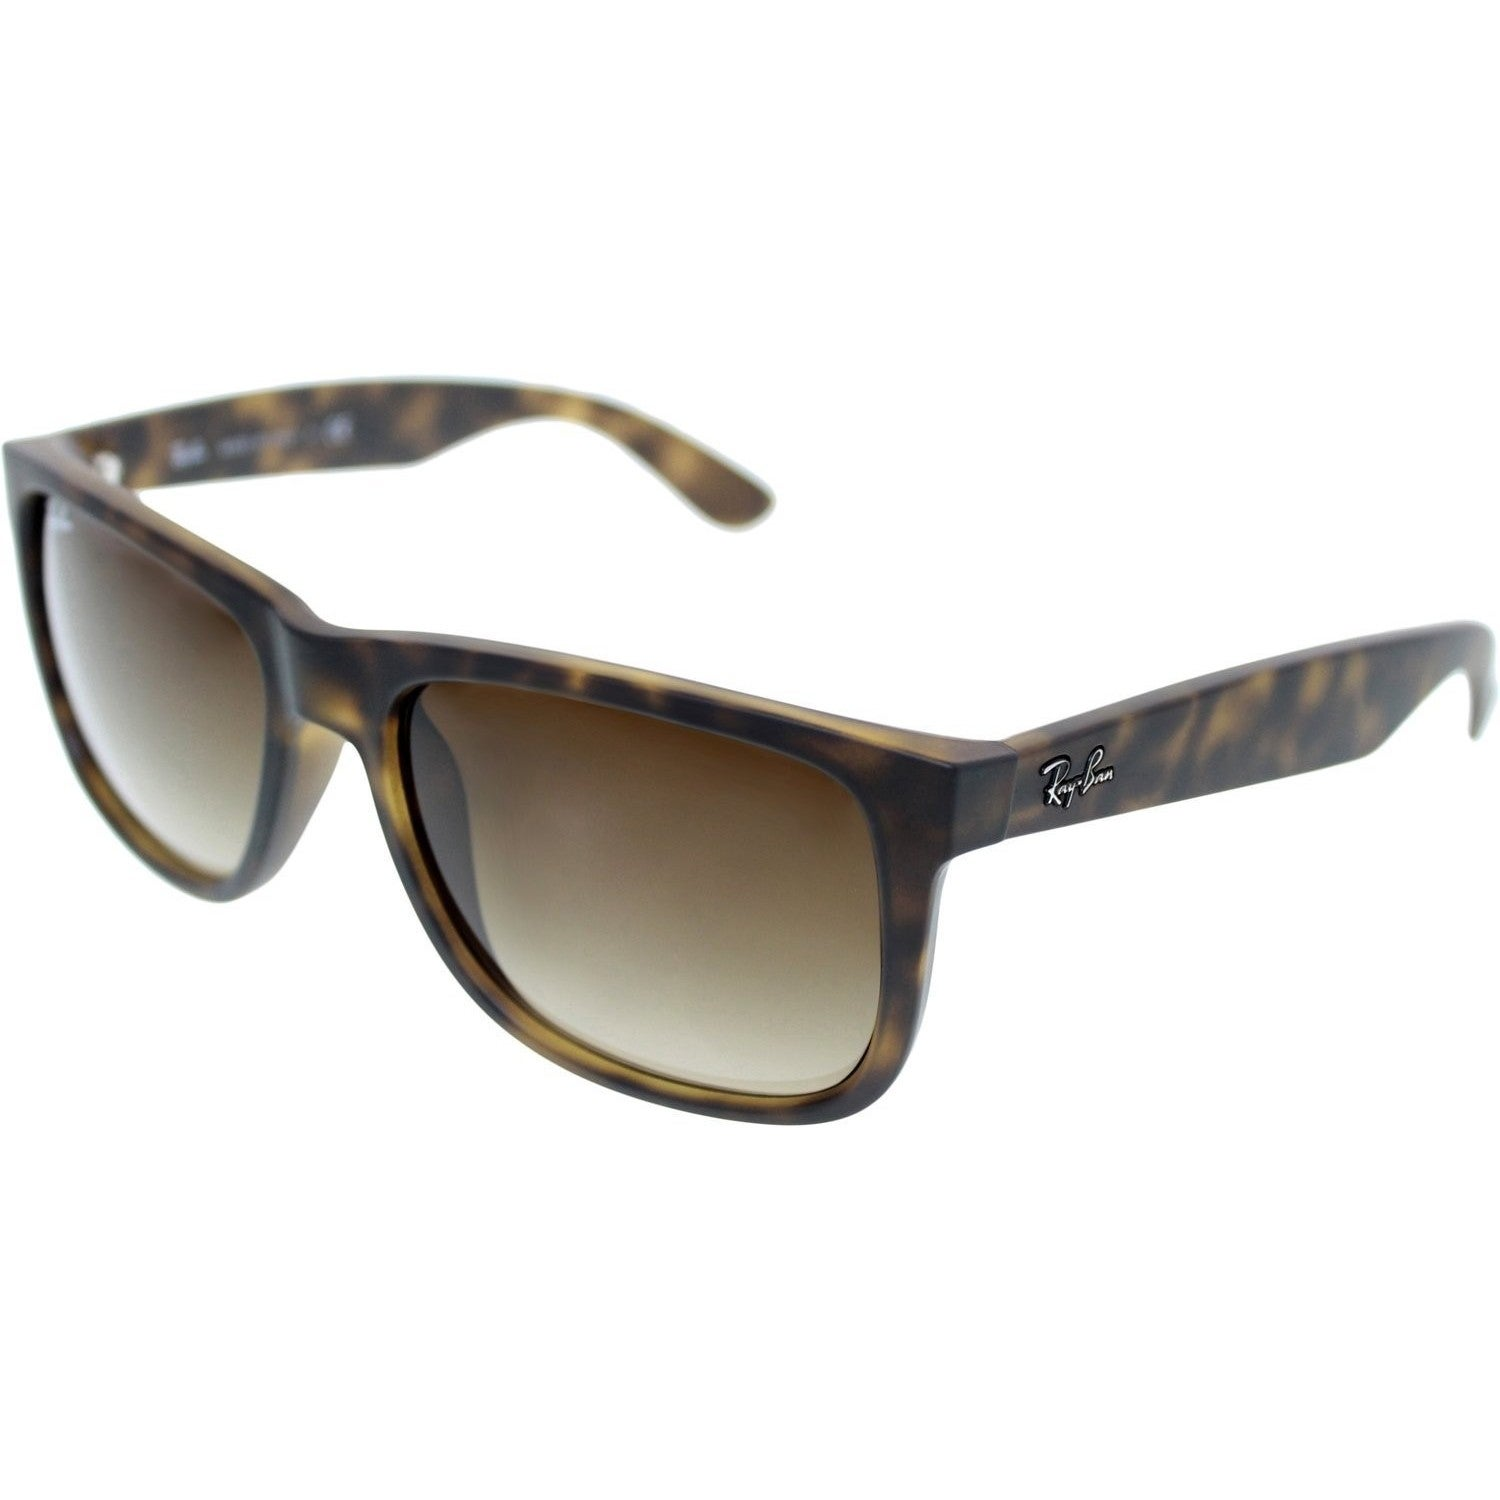 f479ac63b Shop Ray-Ban Justin Matte Tortoise Frame/Brown Gradient 55mm Wayfarer  Sunglasses - Free Shipping Today - Overstock - 9221980